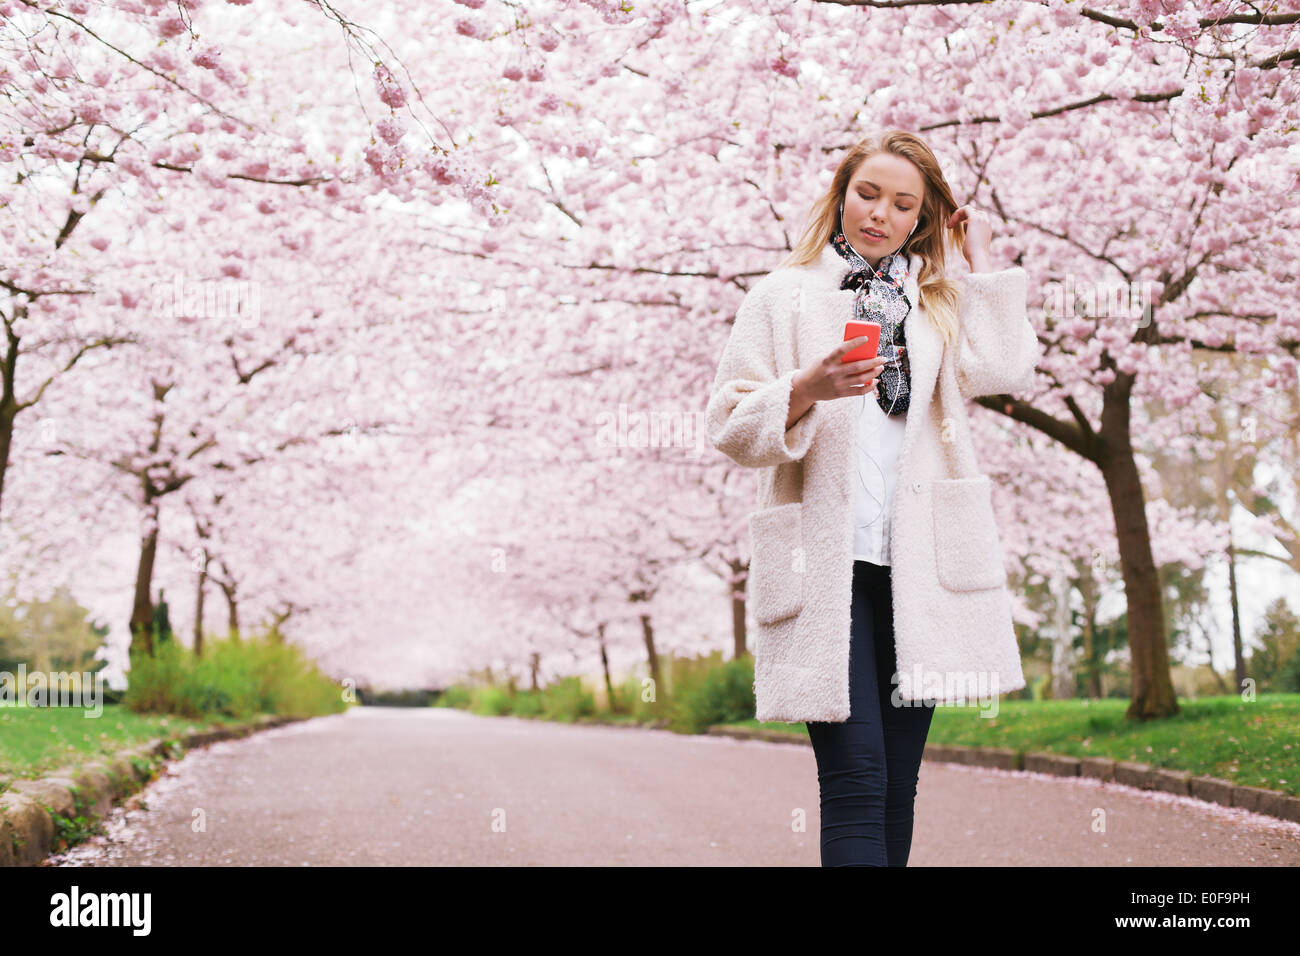 Young lady at spring park listening music from her mobile phone. Relaxed woman taking a walk at spring blossom garden. - Stock Image